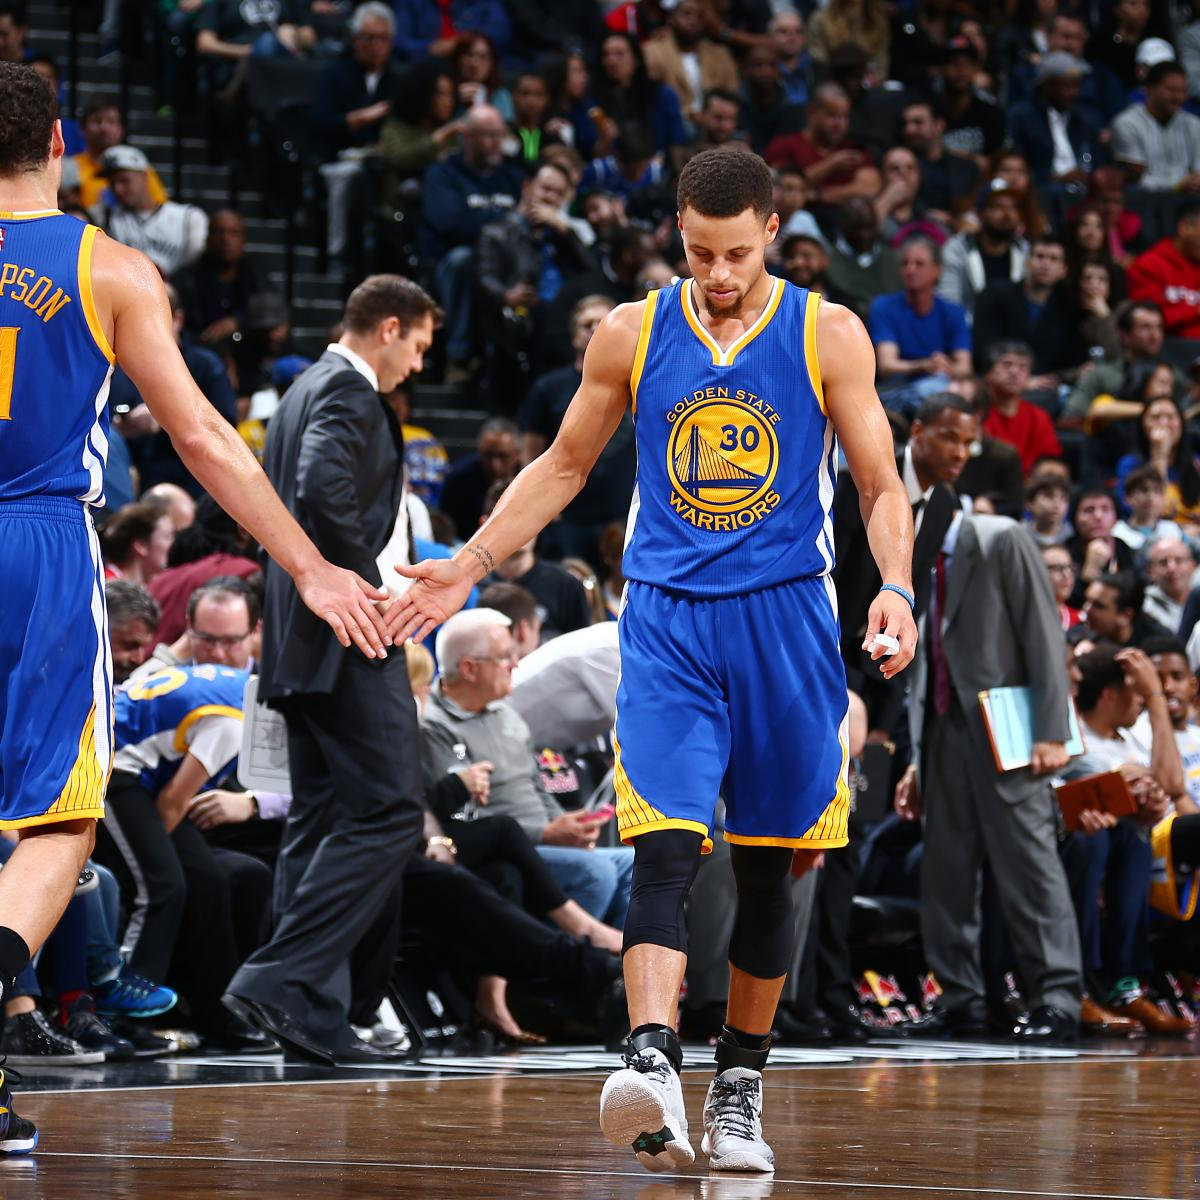 Warriors Vs Nets Full Game Highlights: Warriors Vs. Nets: Score, Highlights And Reaction From